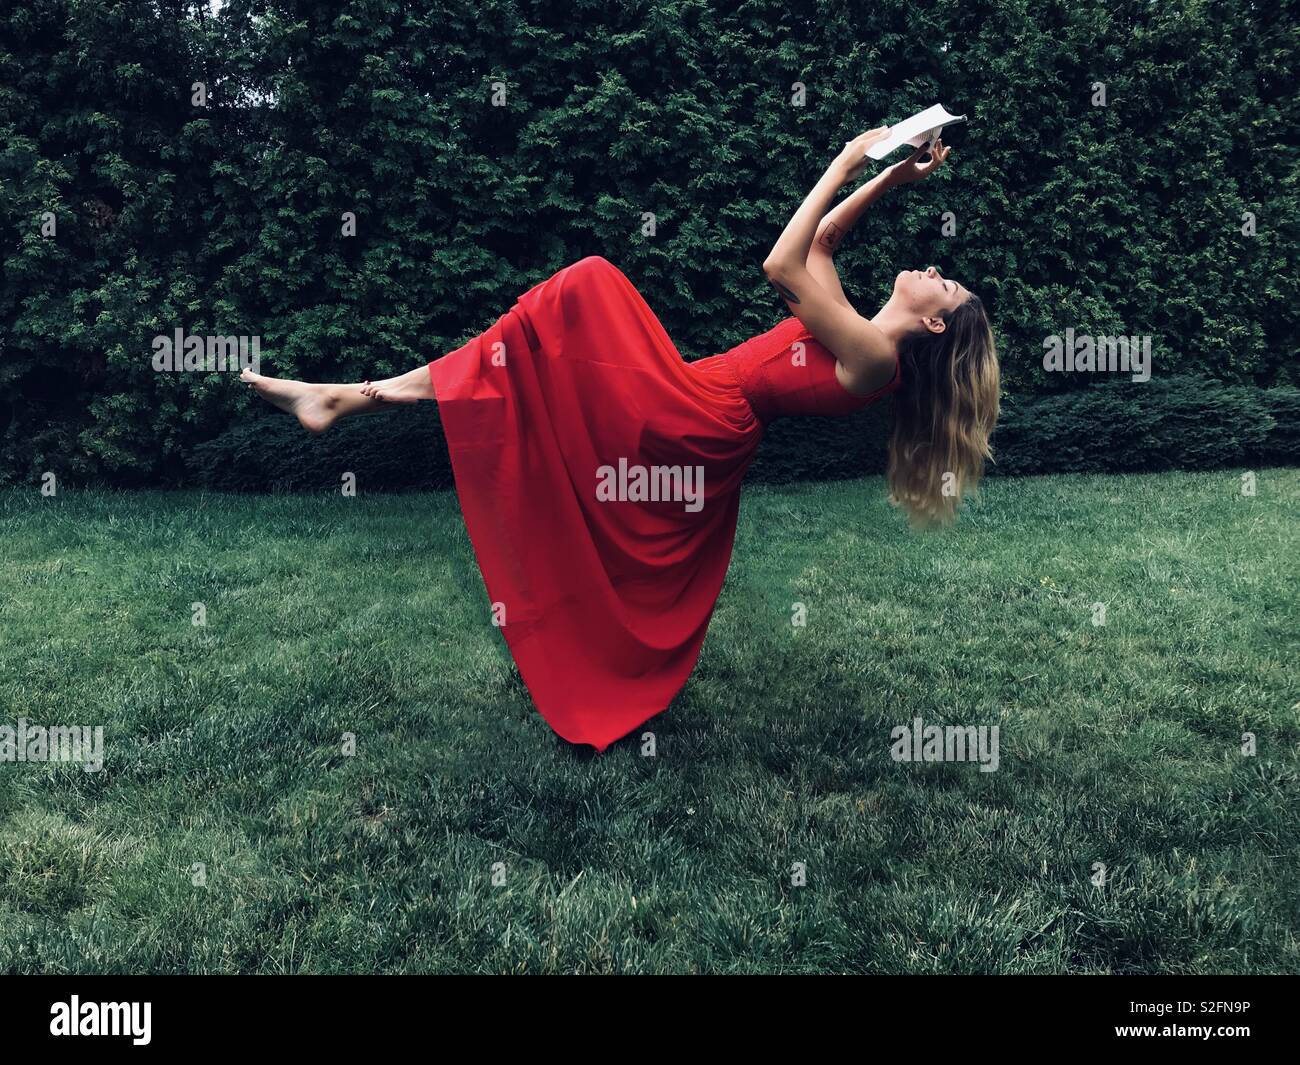 Girl in red dress flying with book - Stock Image